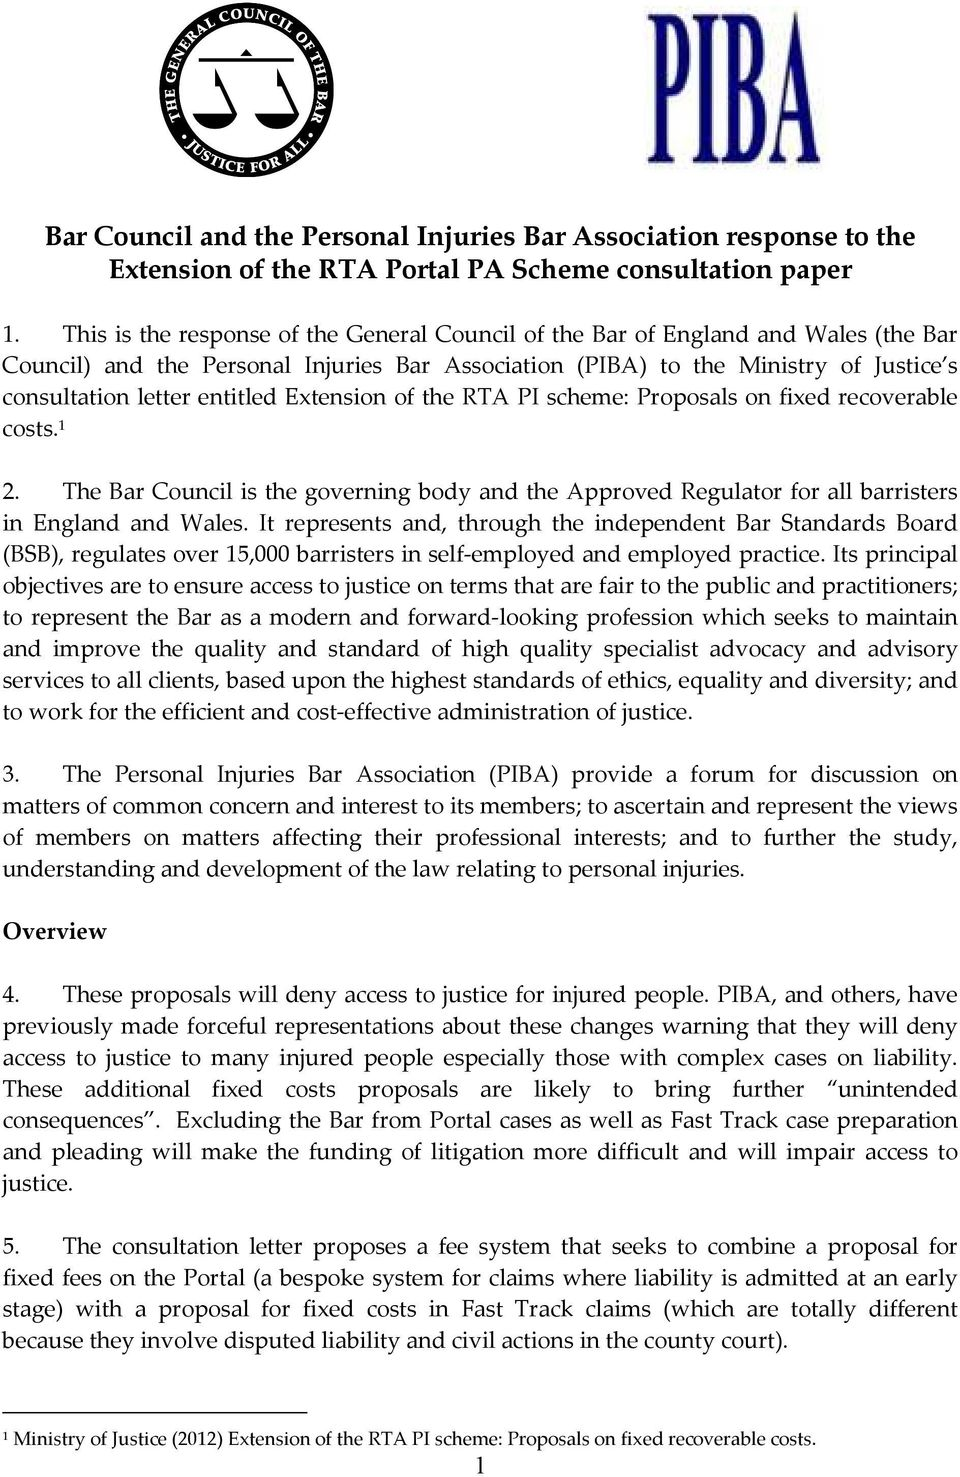 entitled Extension of the RTA PI scheme: Proposals on fixed recoverable costs. 1 2. The Bar Council is the governing body and the Approved Regulator for all barristers in England and Wales.